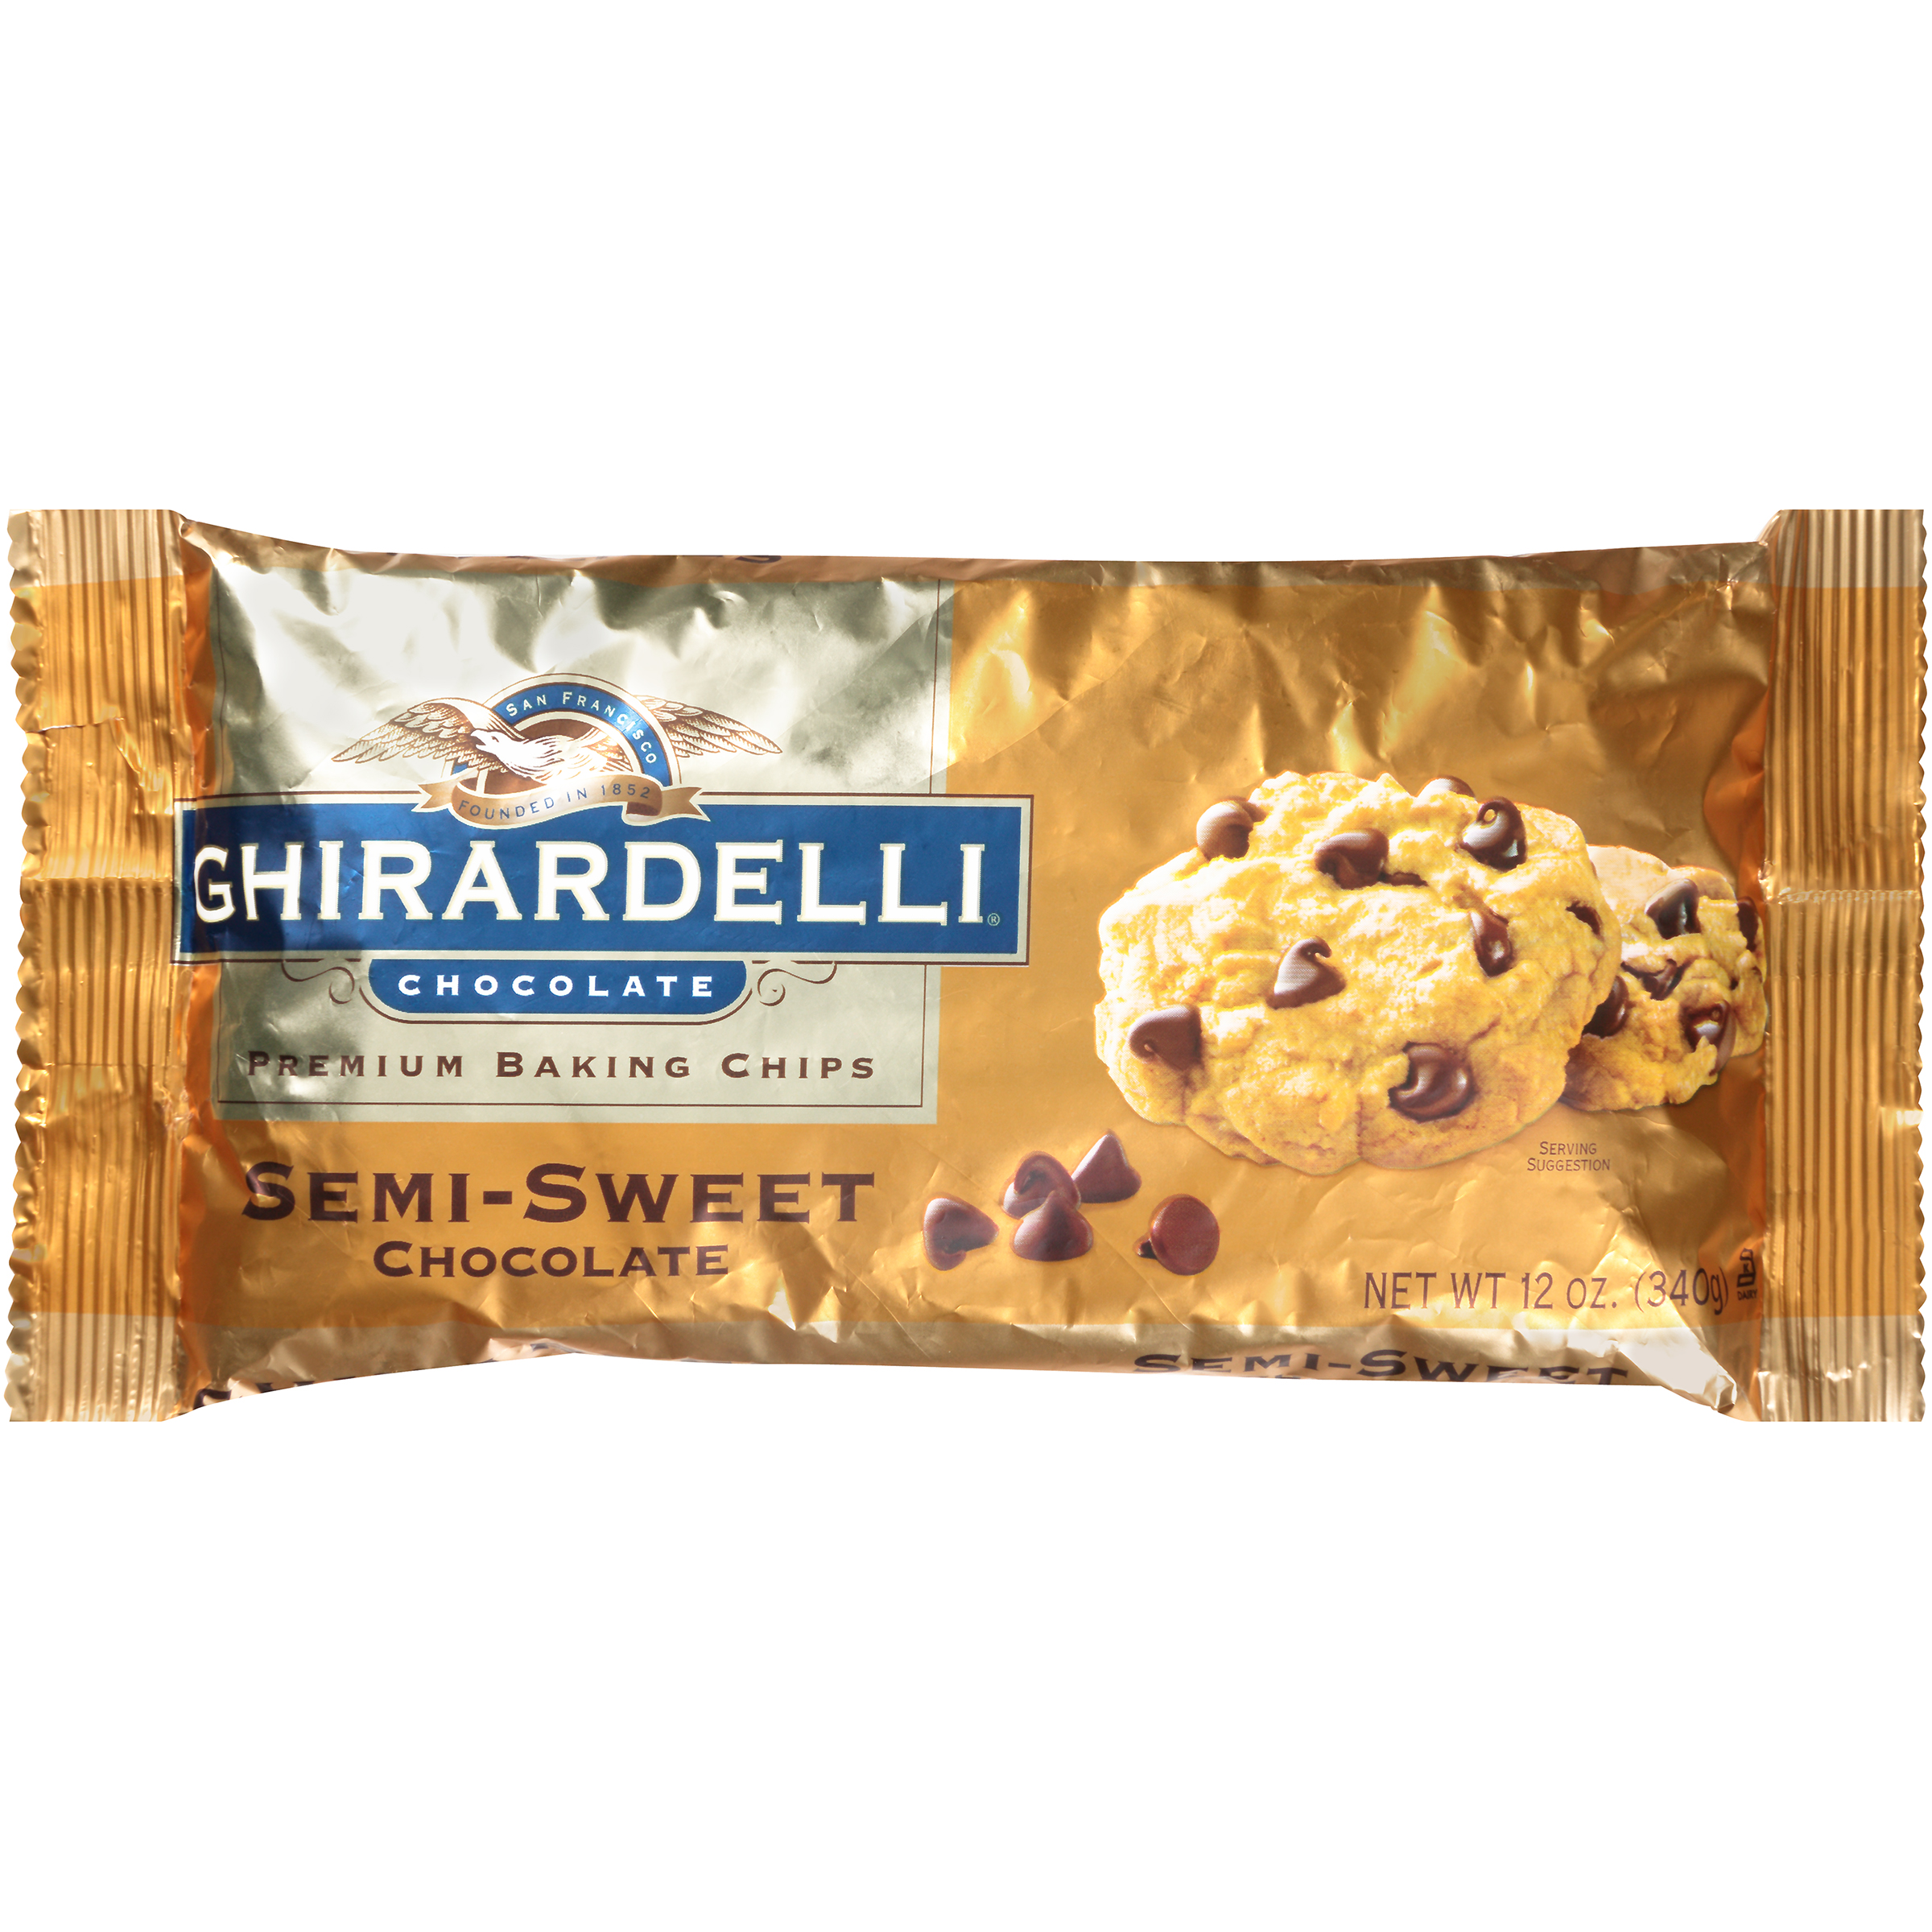 Ghirardelli Chocolate® Semi-Sweet Chocolate Premium Baking Chips 12 oz. Bag